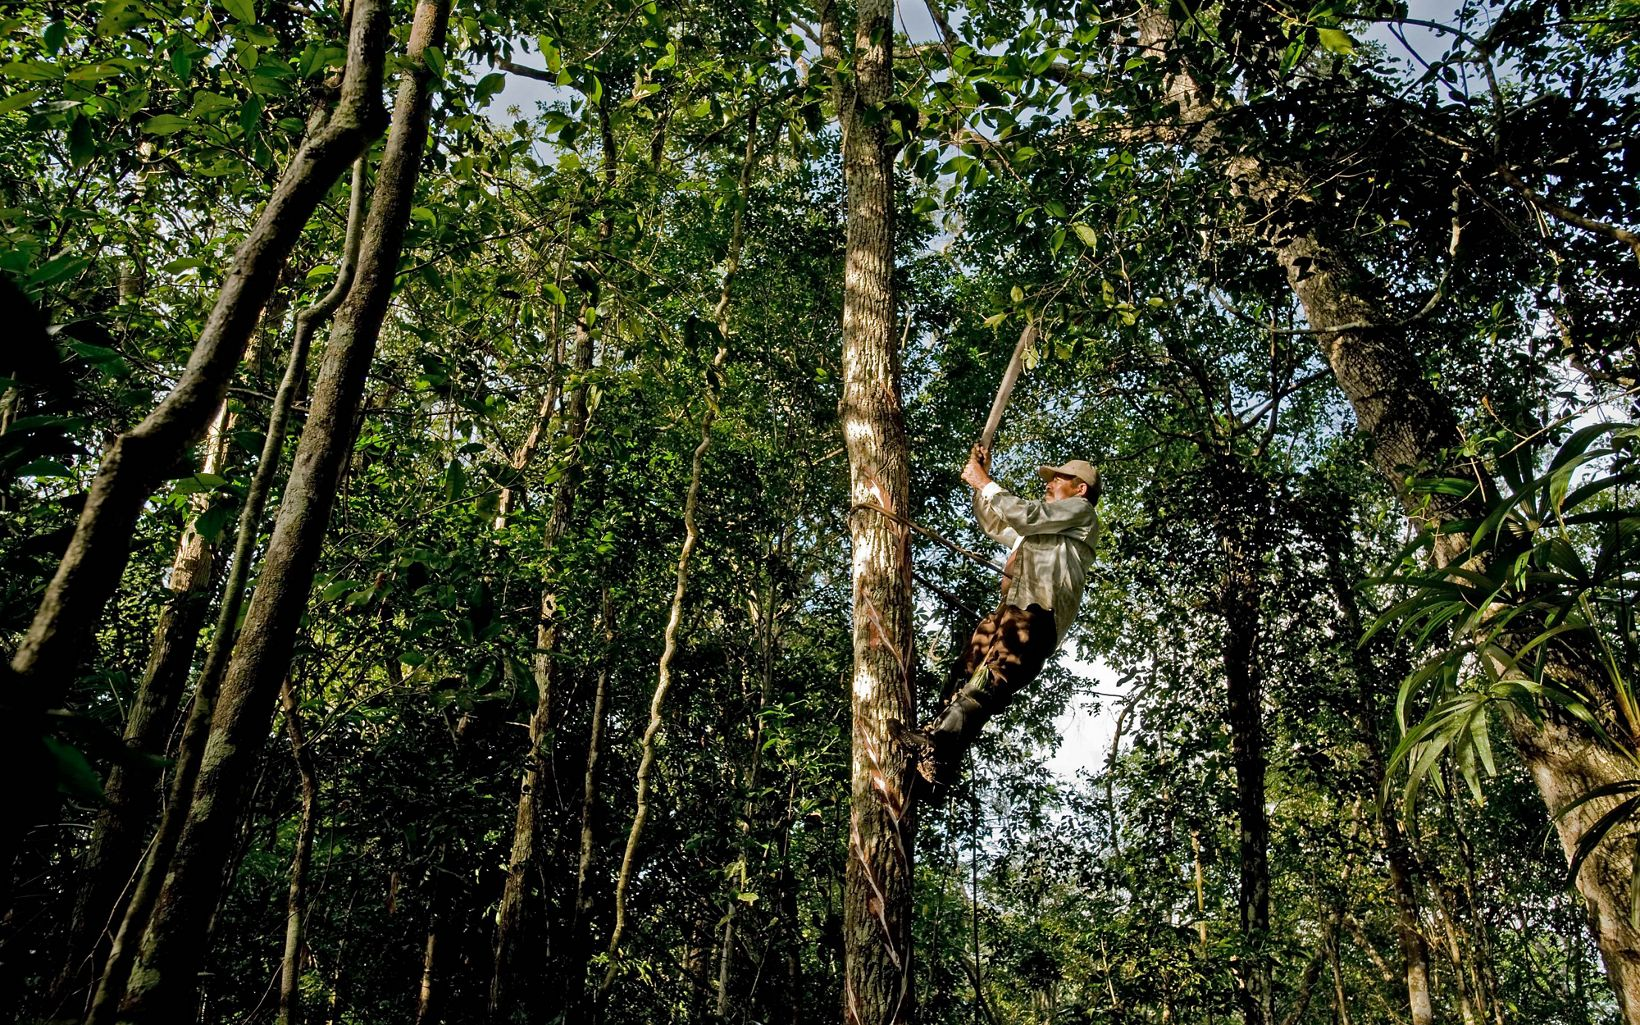 A man works  in the Mayas forest